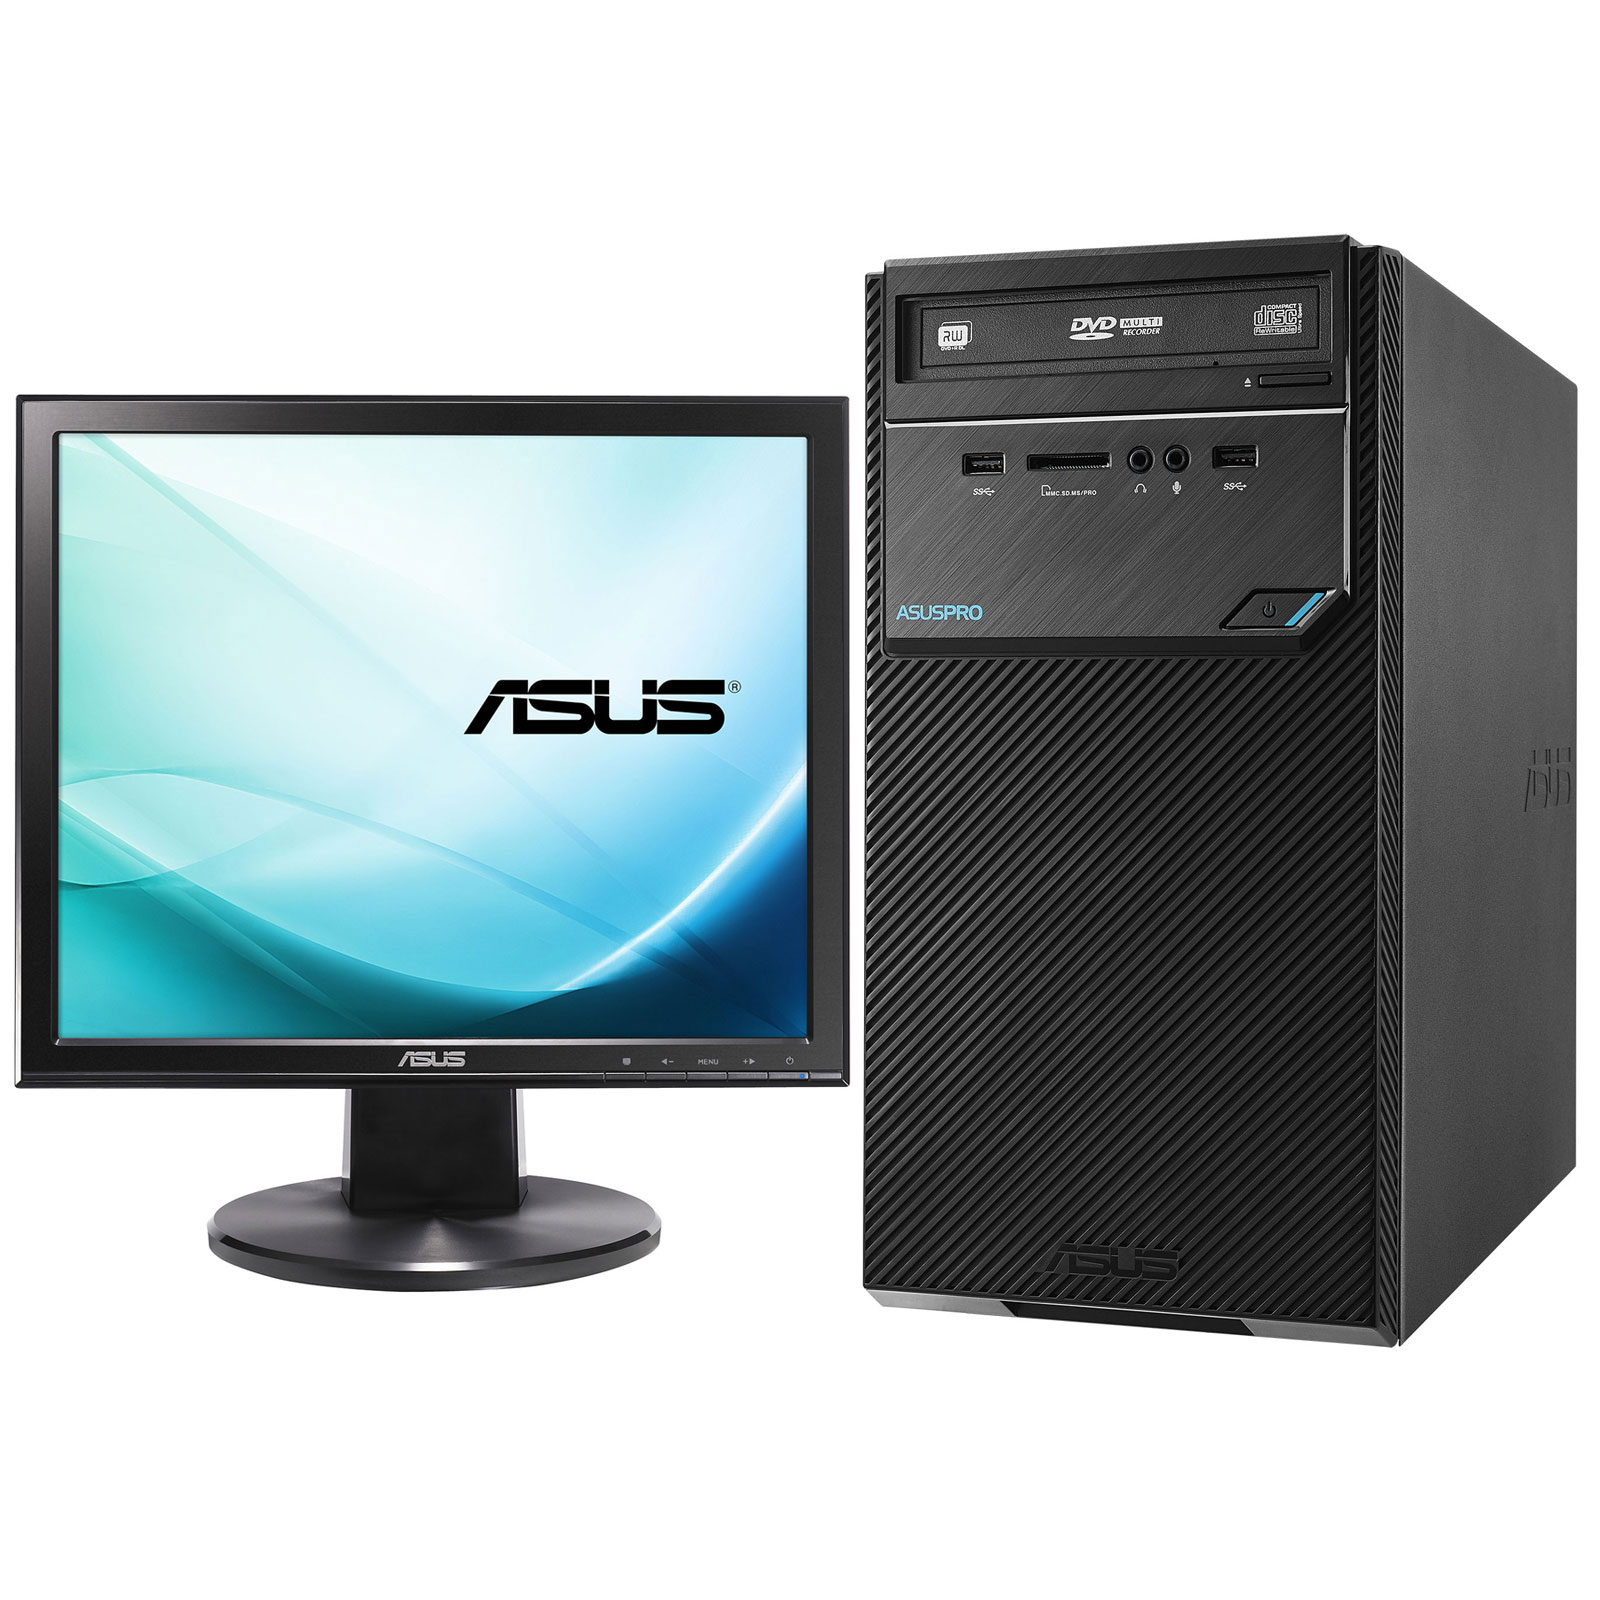 asus d320mt i361000284 cran asus vb199t pc de bureau asus sur. Black Bedroom Furniture Sets. Home Design Ideas